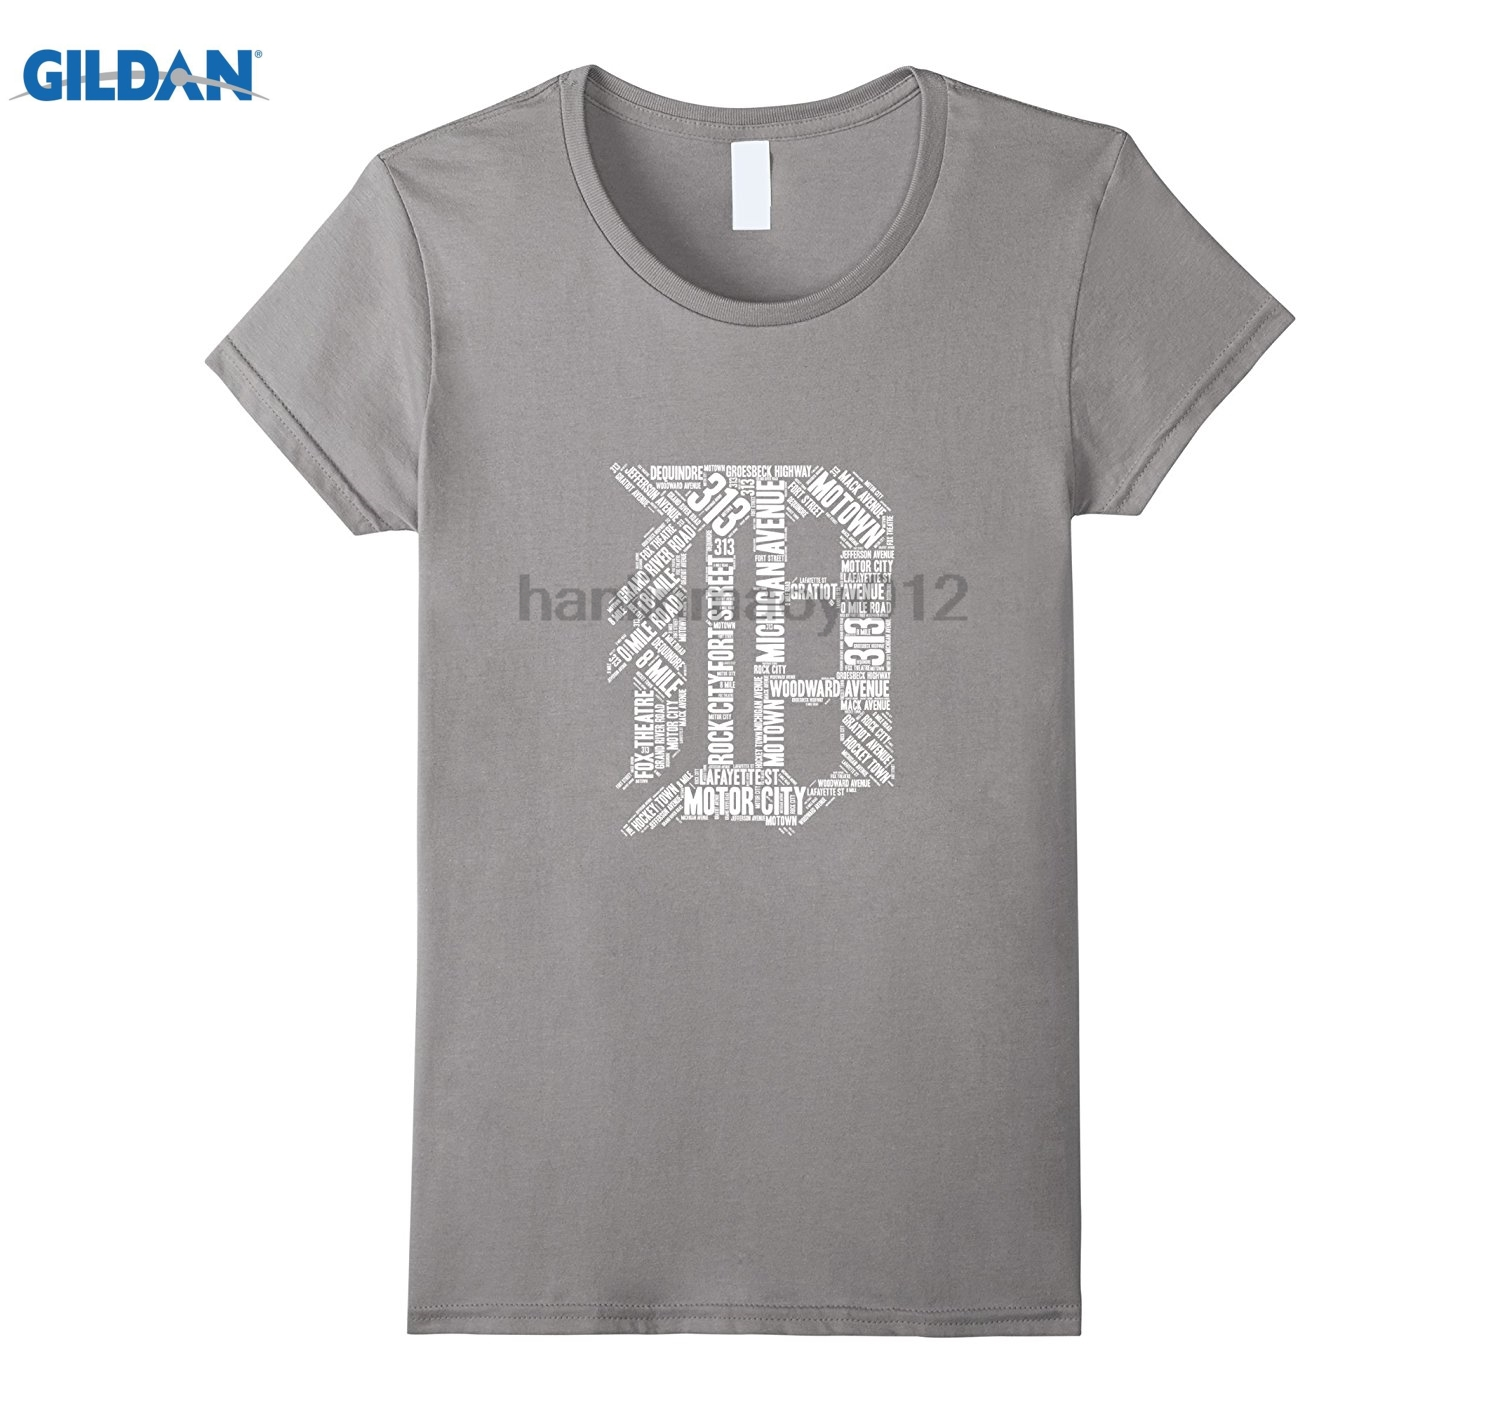 GILDAN Detroit T Shirt Graphic D Womens T-shirt